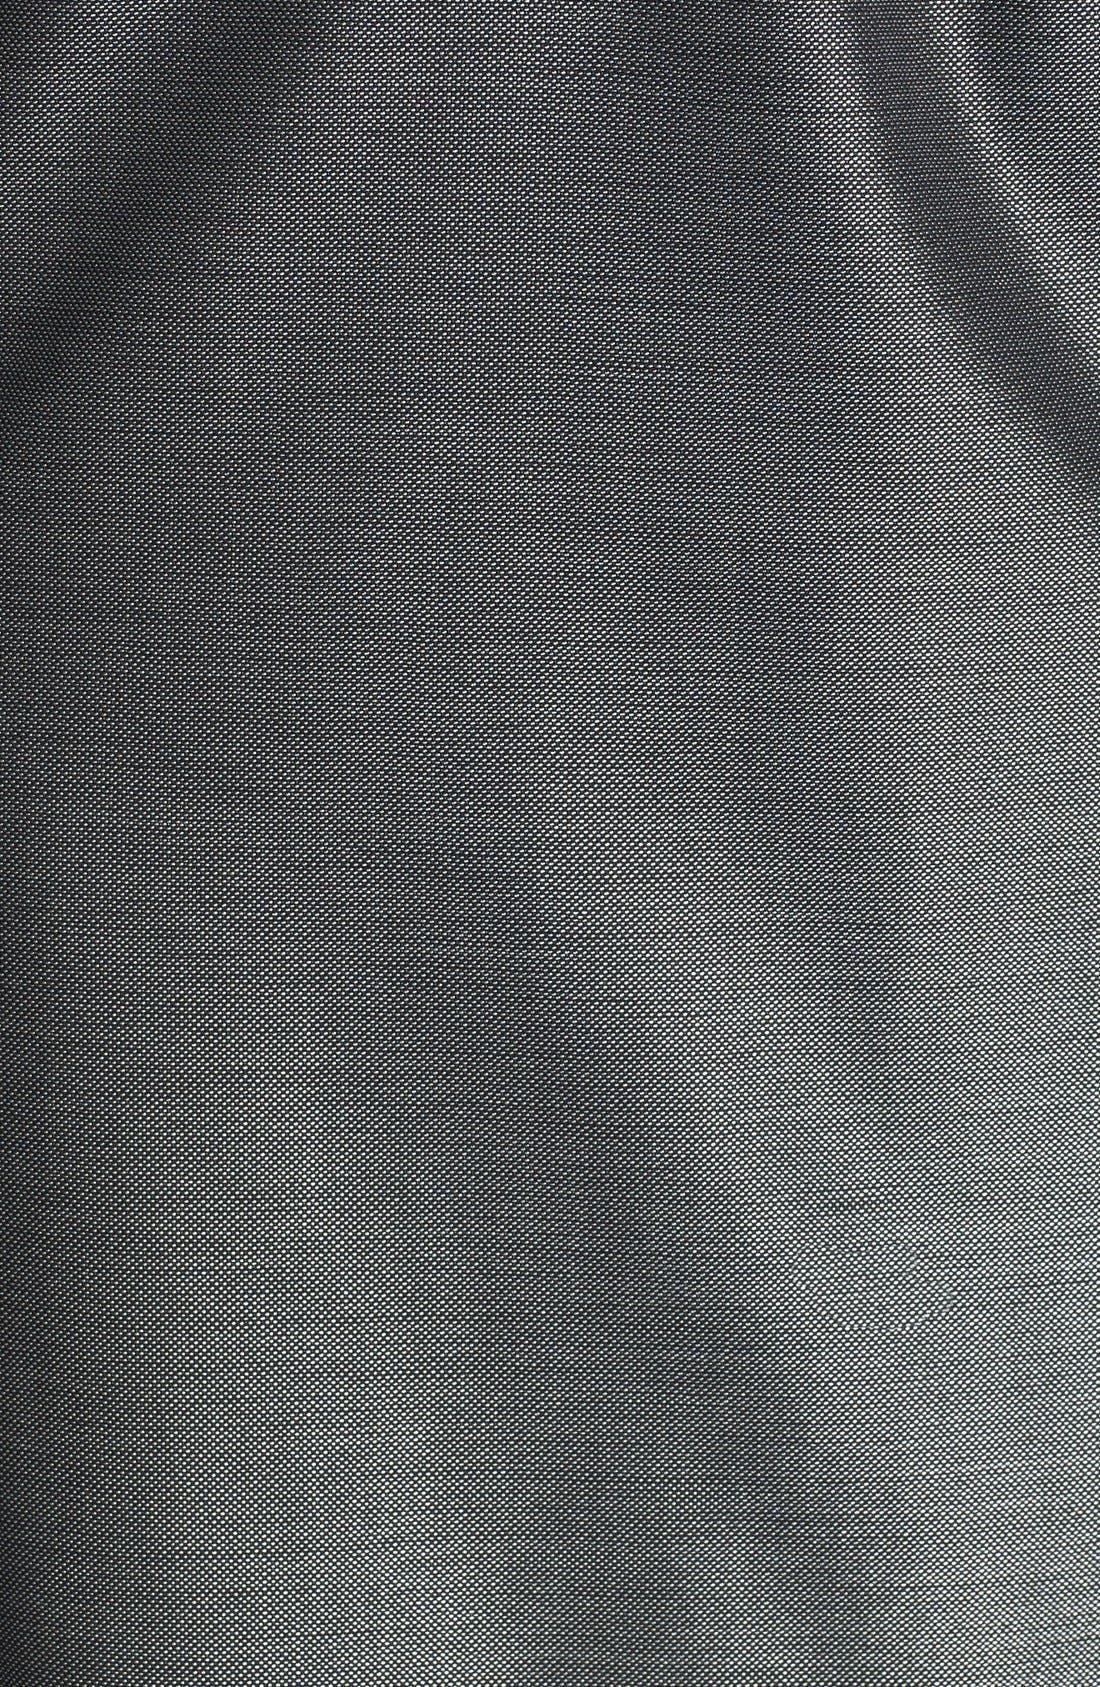 Alternate Image 3  - BOSS HUGO BOSS 'Dipera' Wool Blend Sheath Dress